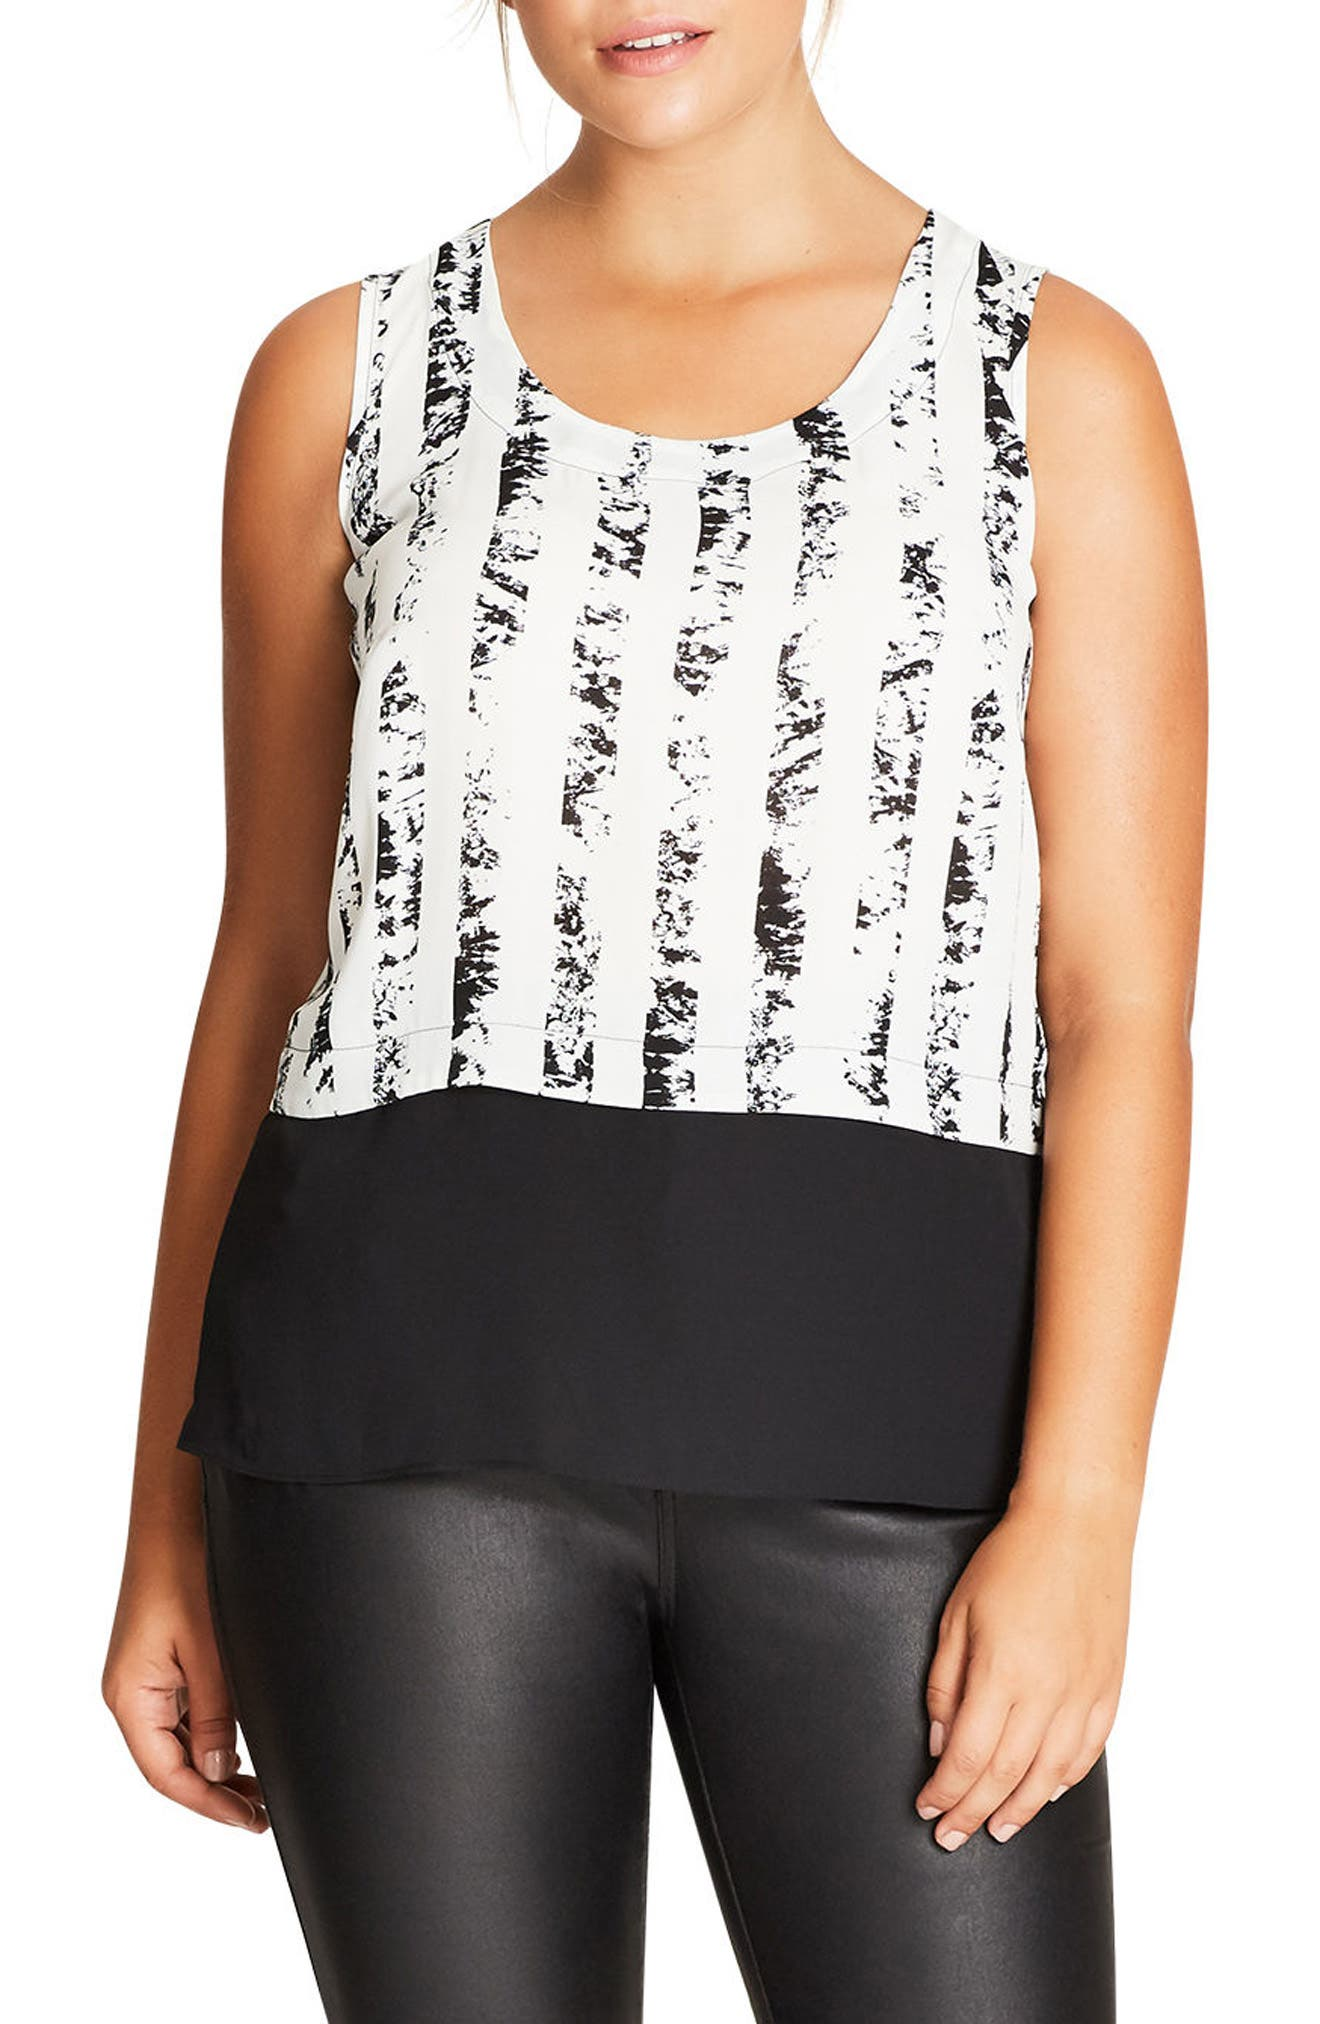 City Chic Print Overlay Top (Plus Size)